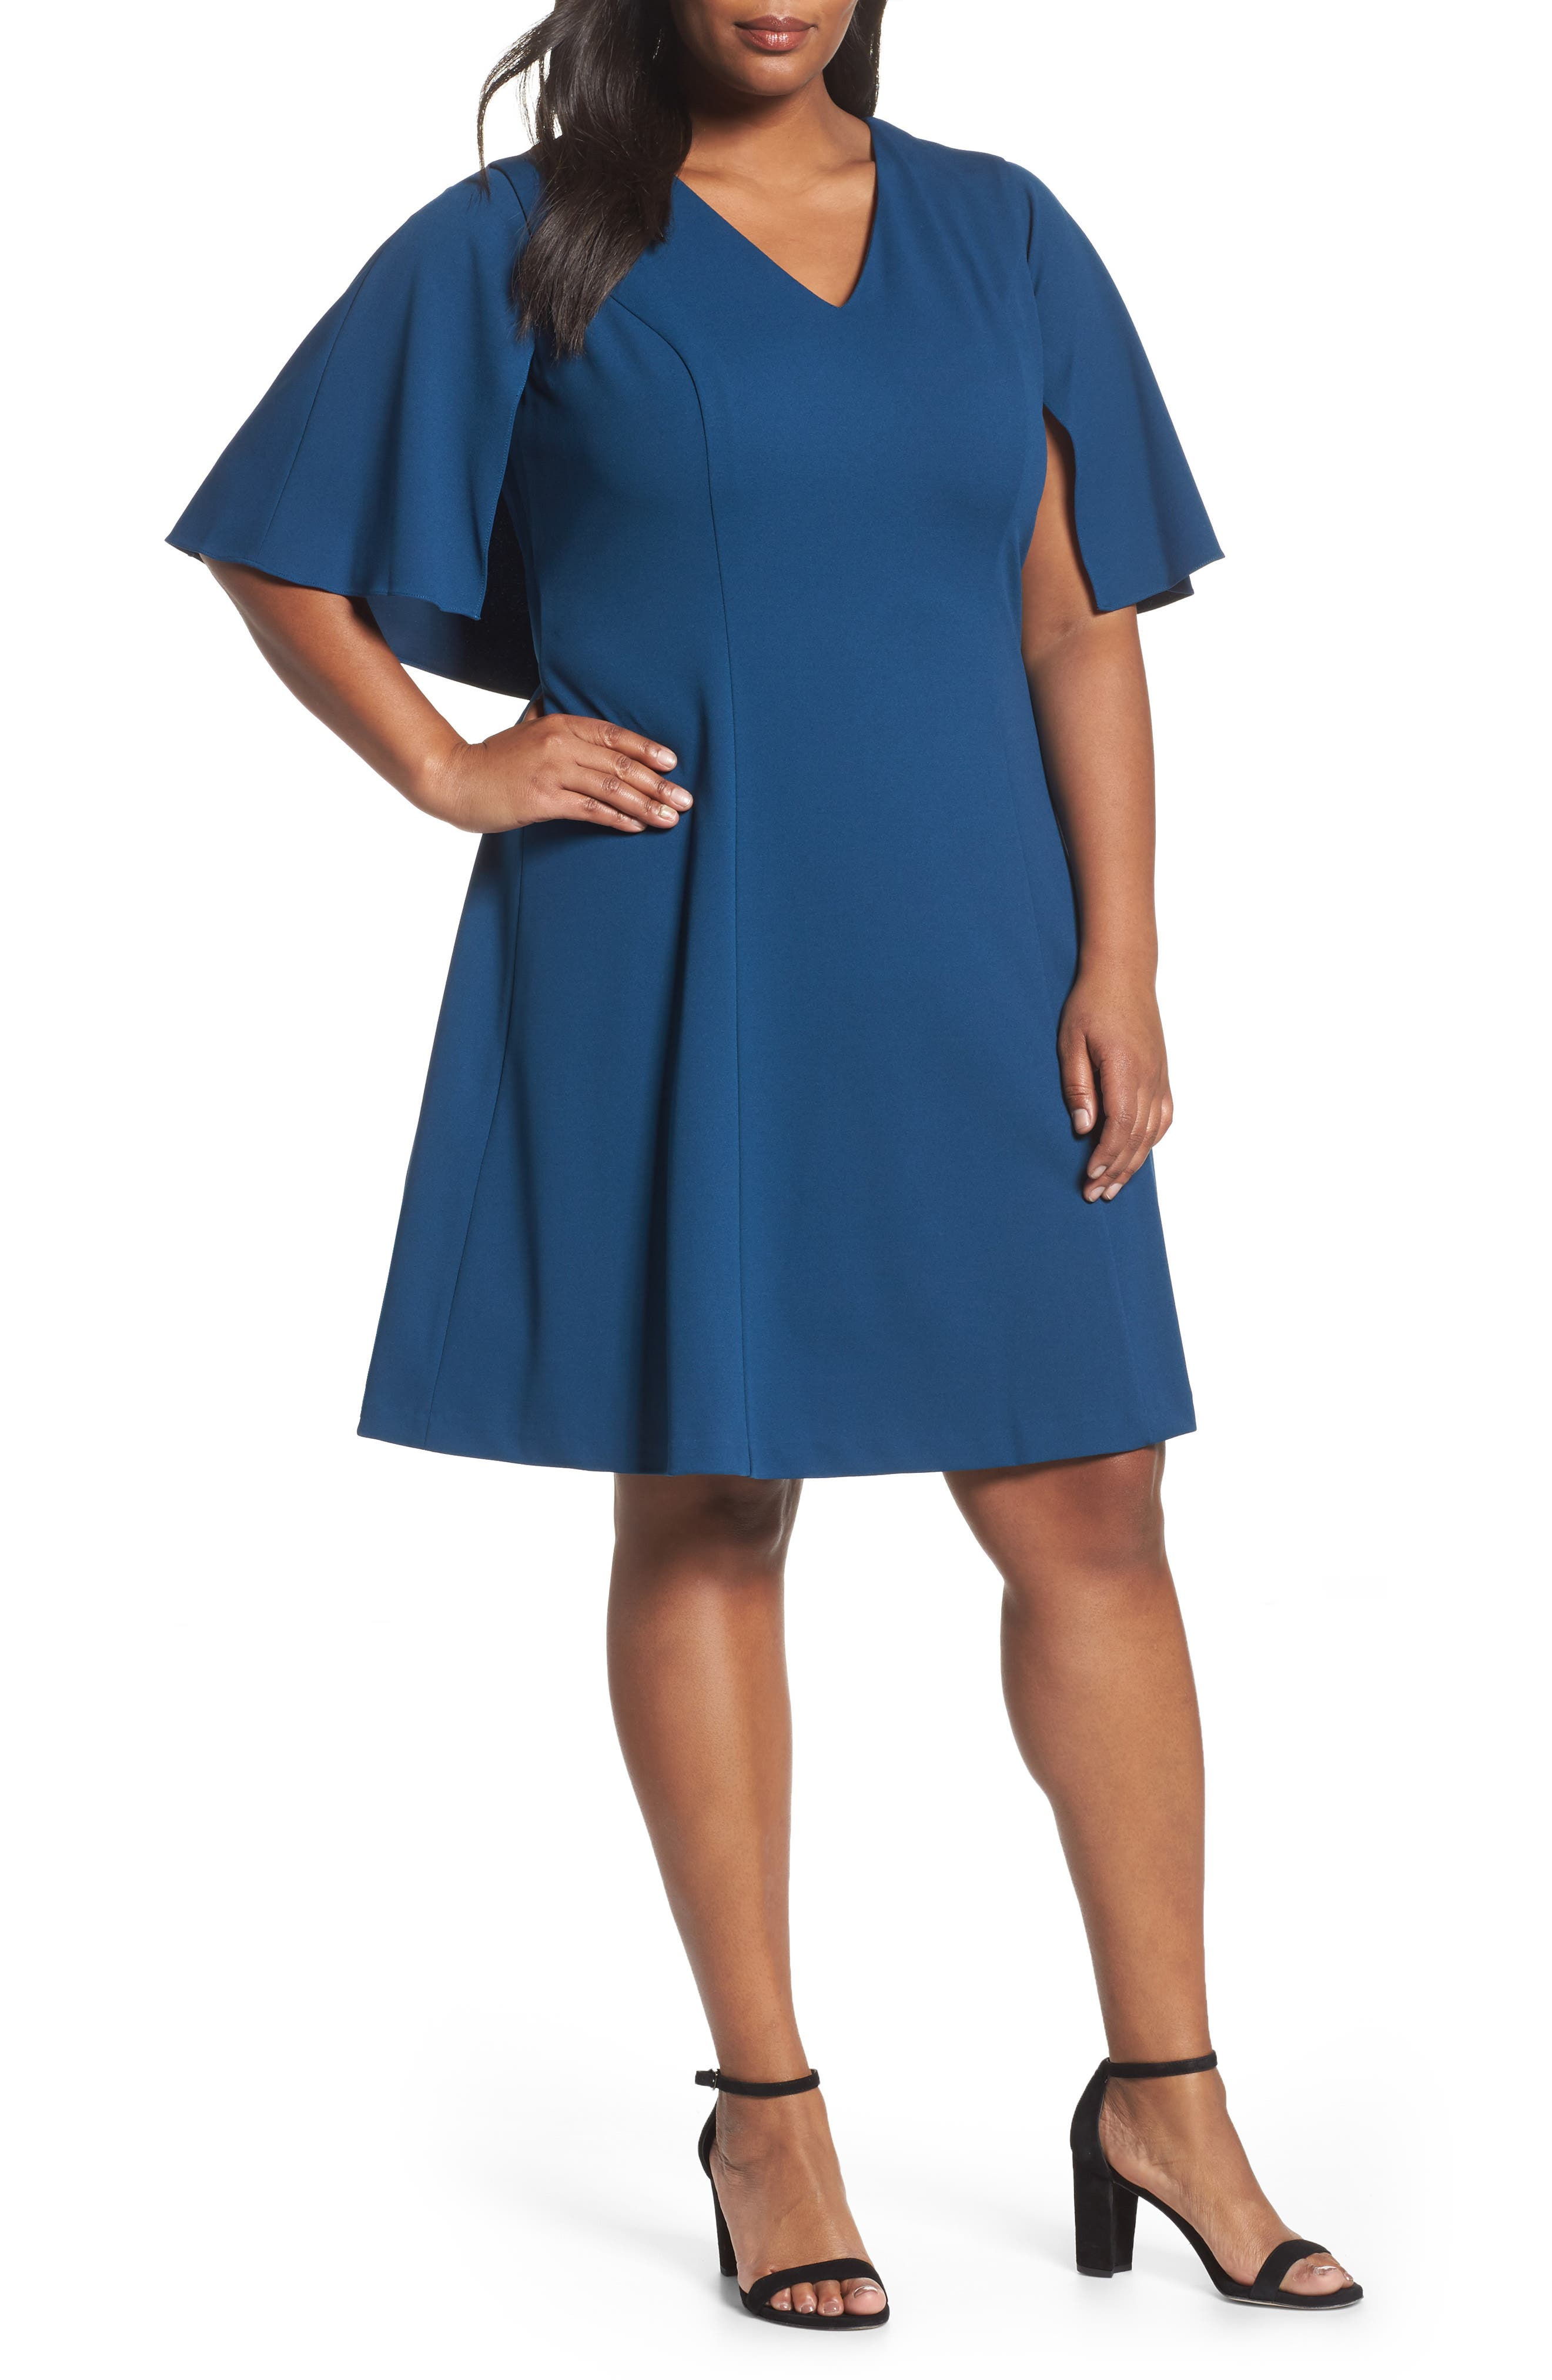 Adrianna Papell Capelet A-Line Dress (Plus Size)